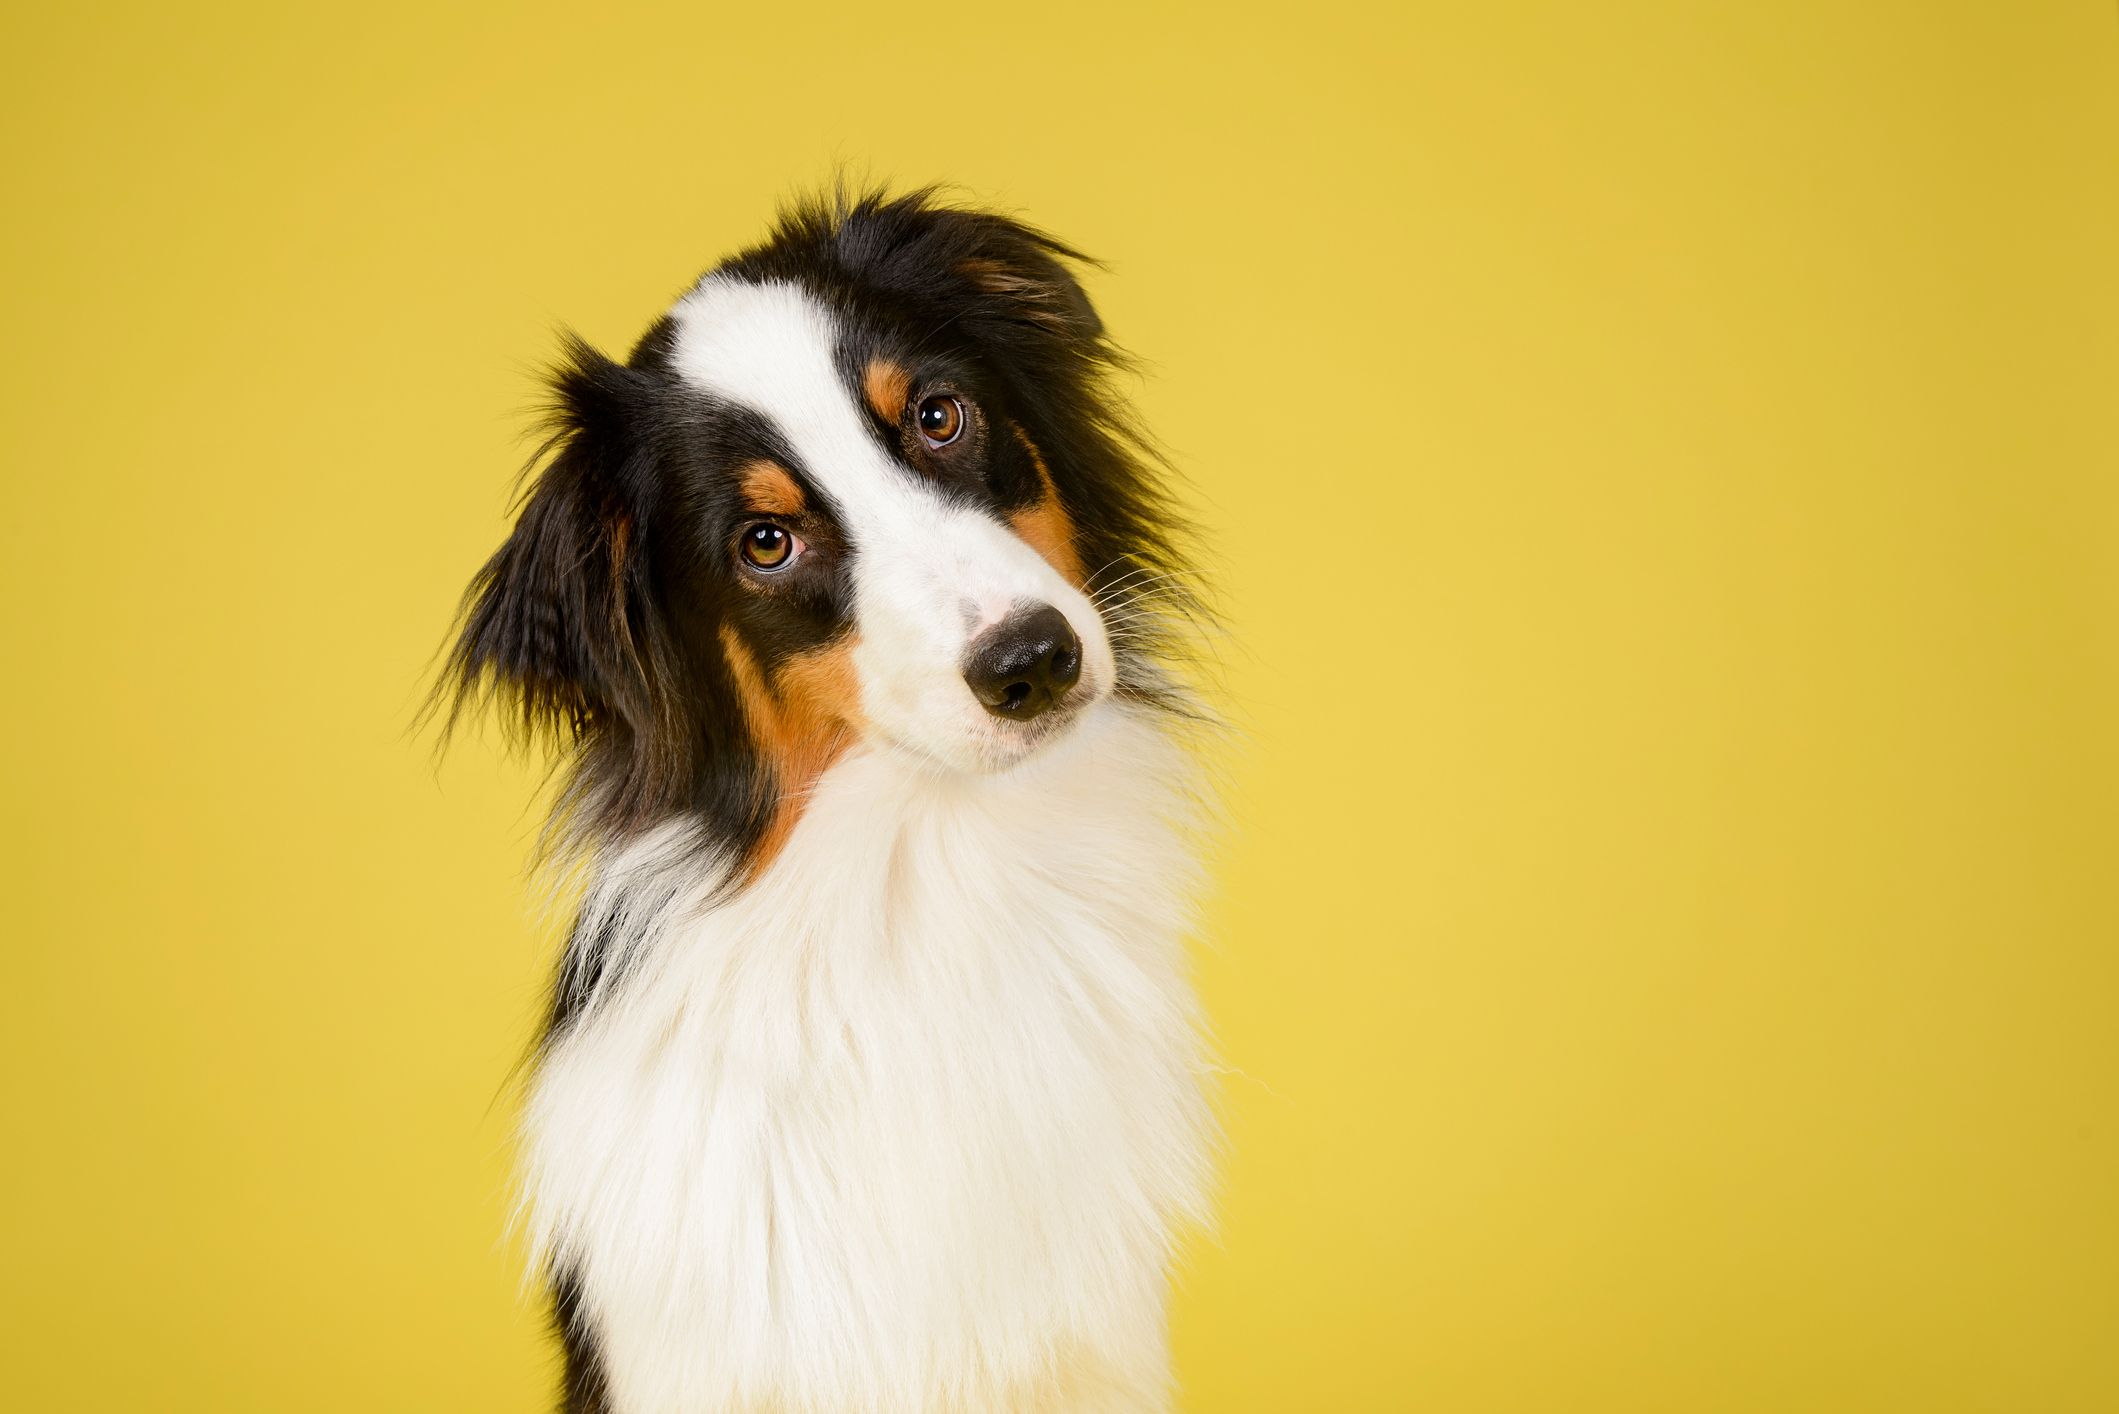 I Tried the Most Popular Dog DNA Tests to Find the Best One